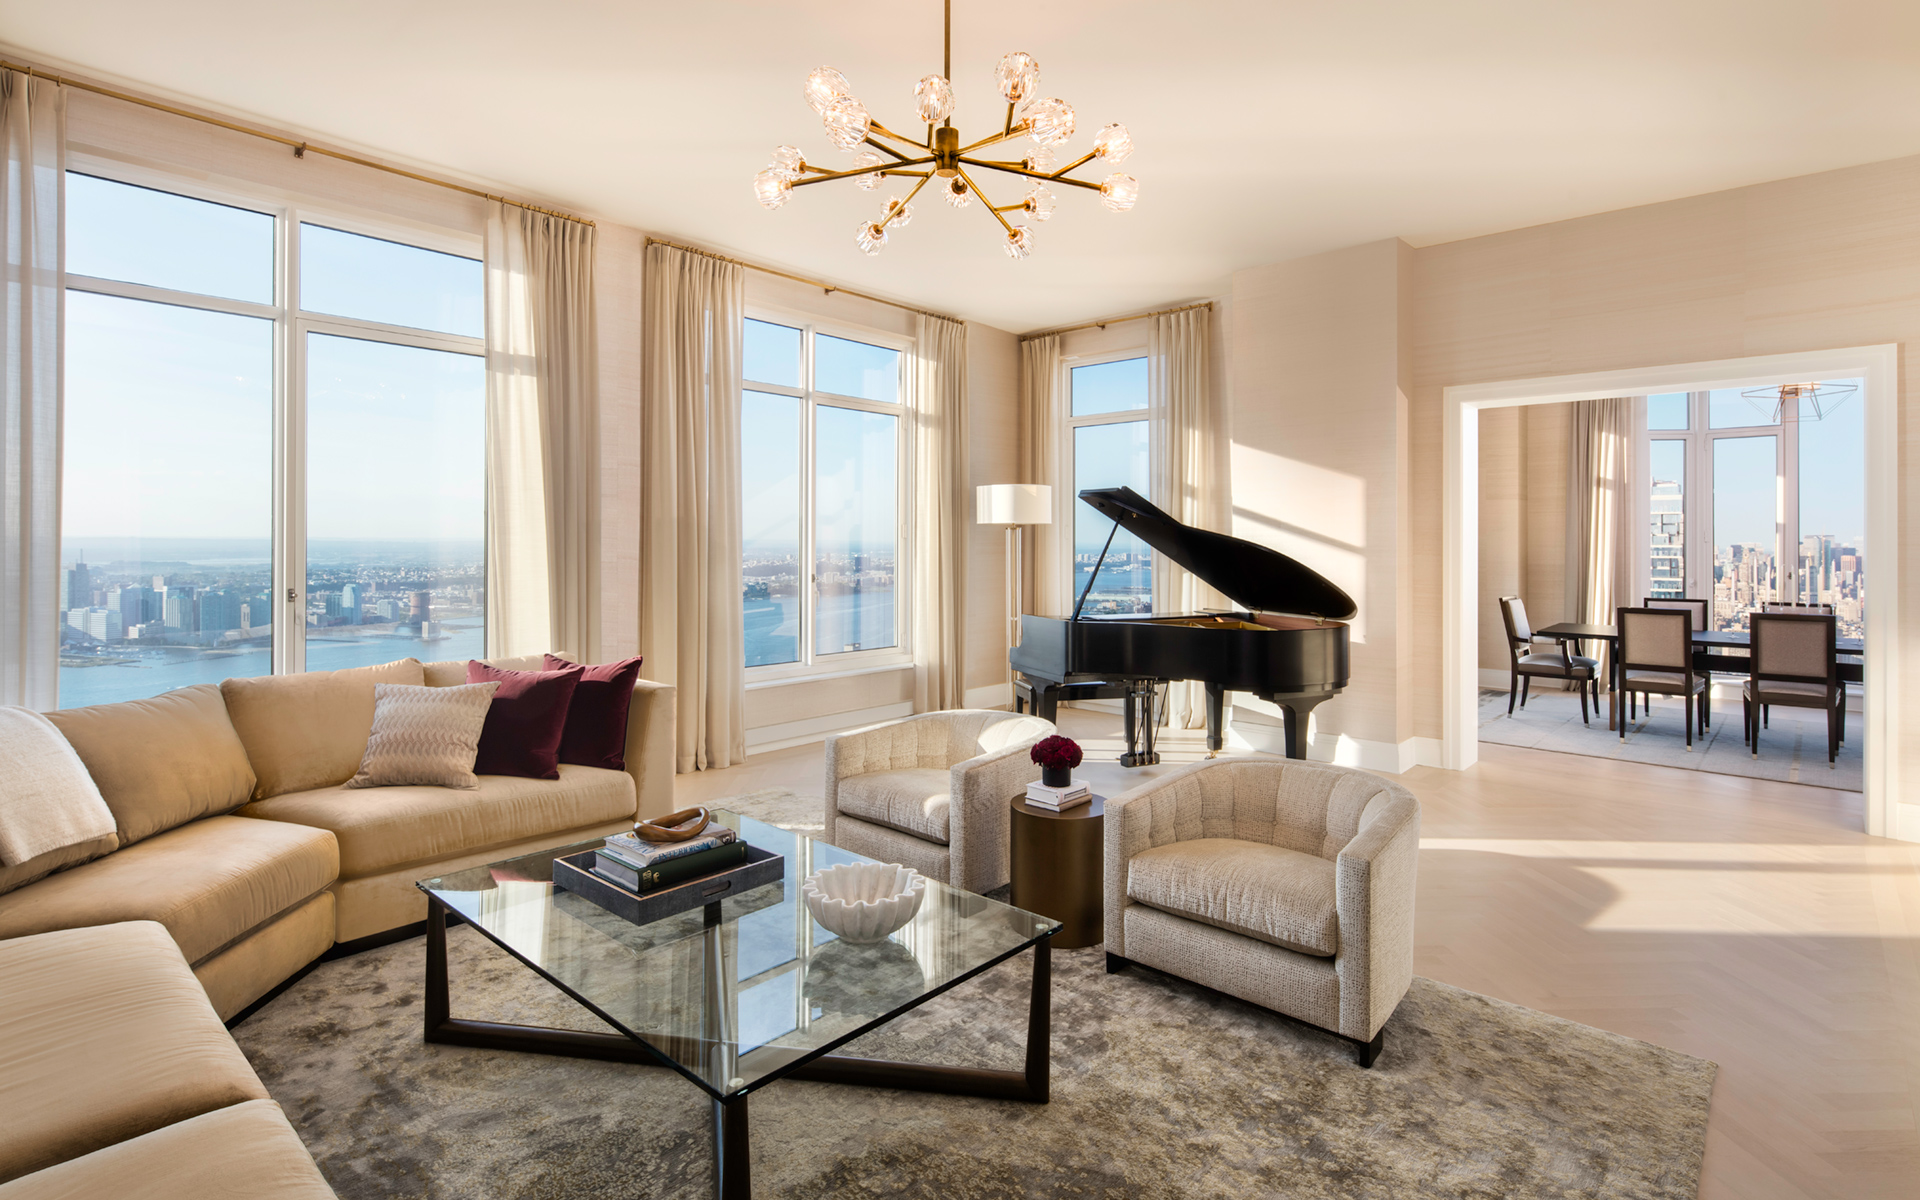 A furnished luxury residence at 30 Park Place with expansive views